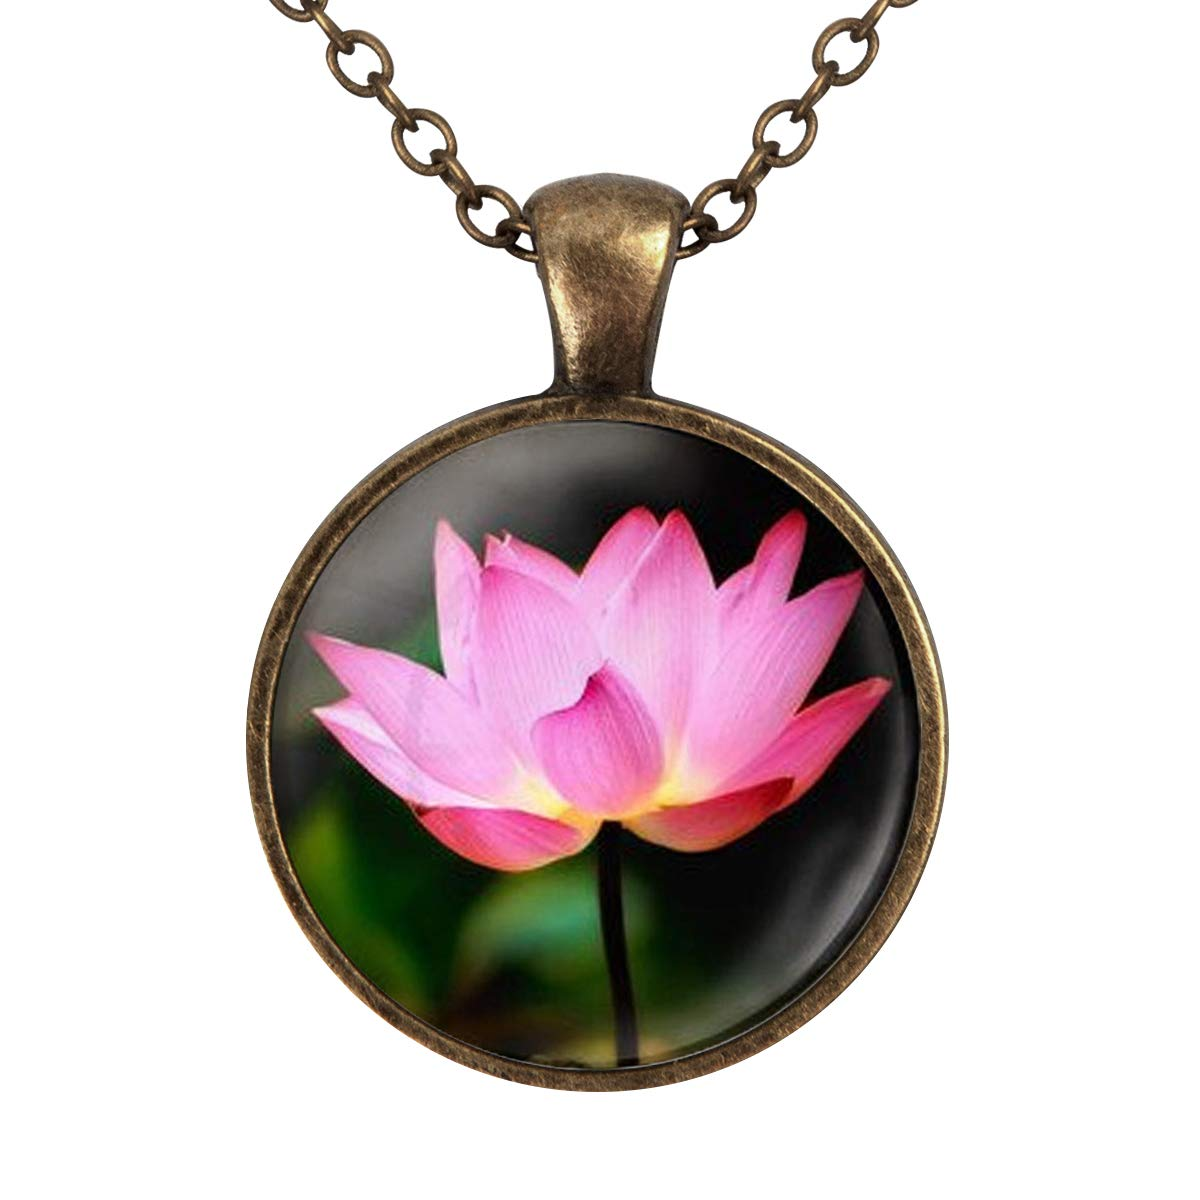 Lightrain Pink Lotus Art Pendant Necklace Vintage Bronze Chain Statement Necklace Handmade Jewelry Gifts